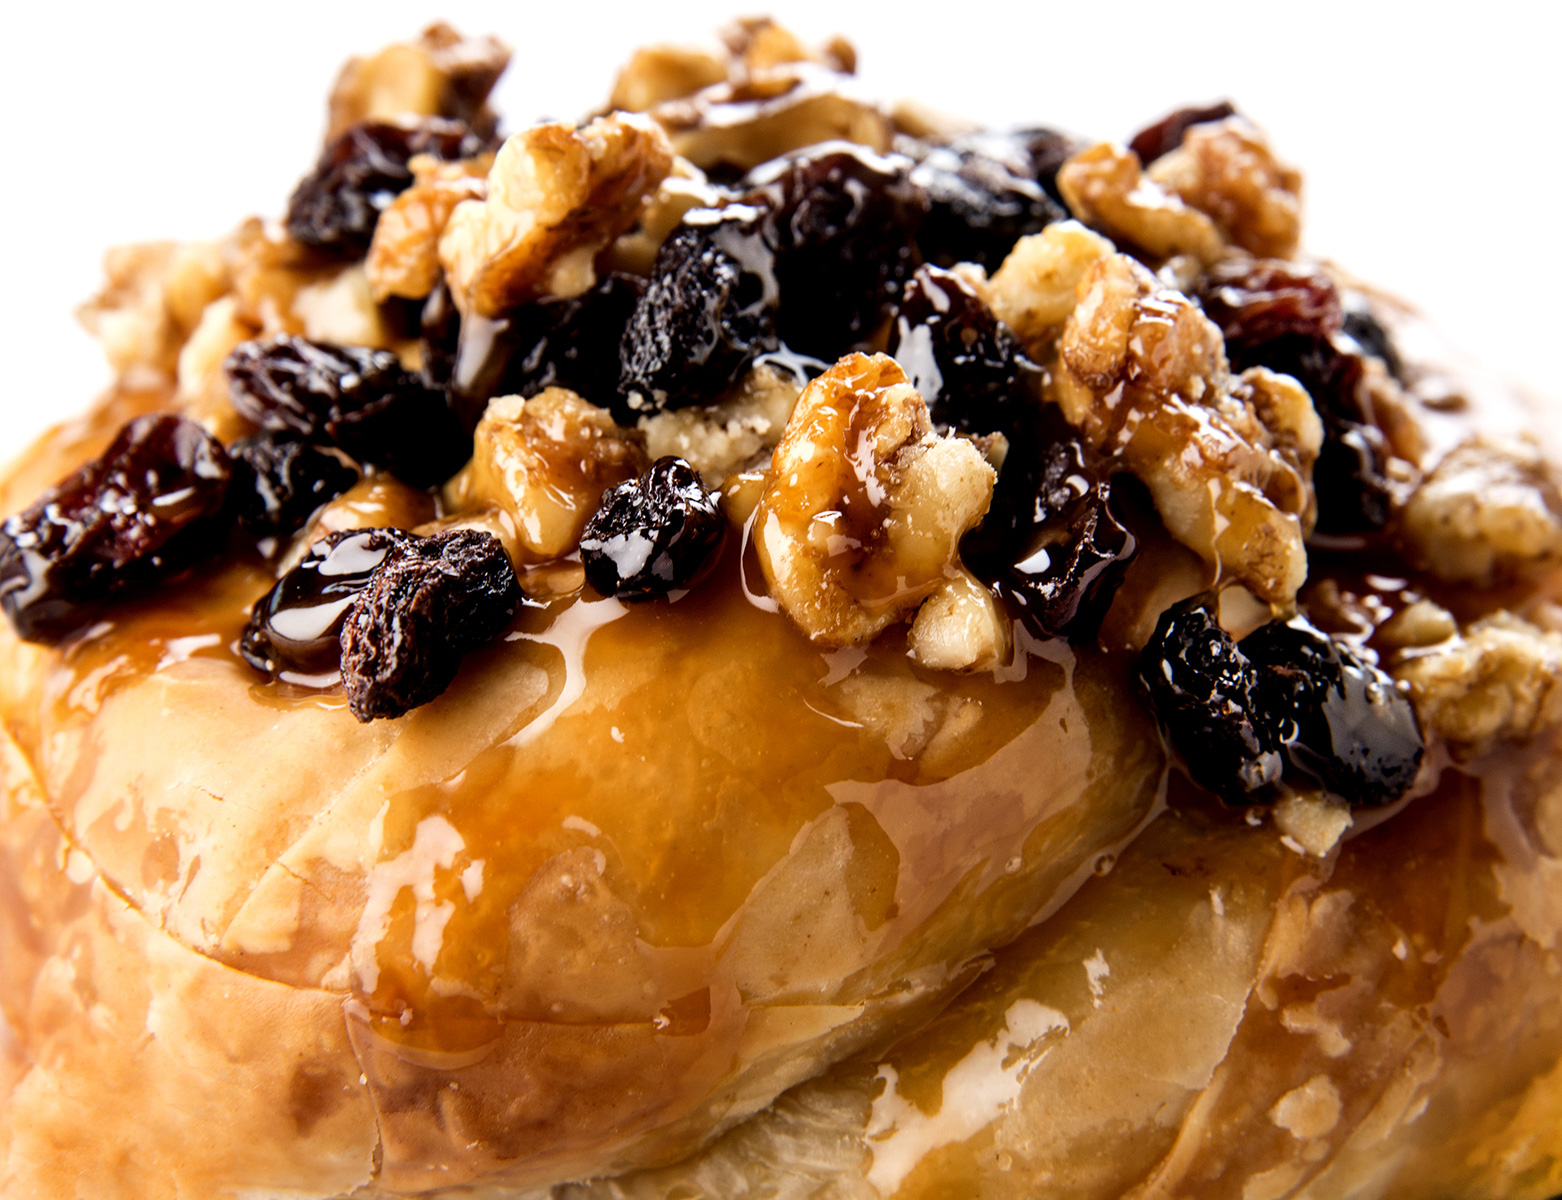 Raisin and Nut Pastry-Carl-Kravats-Photography